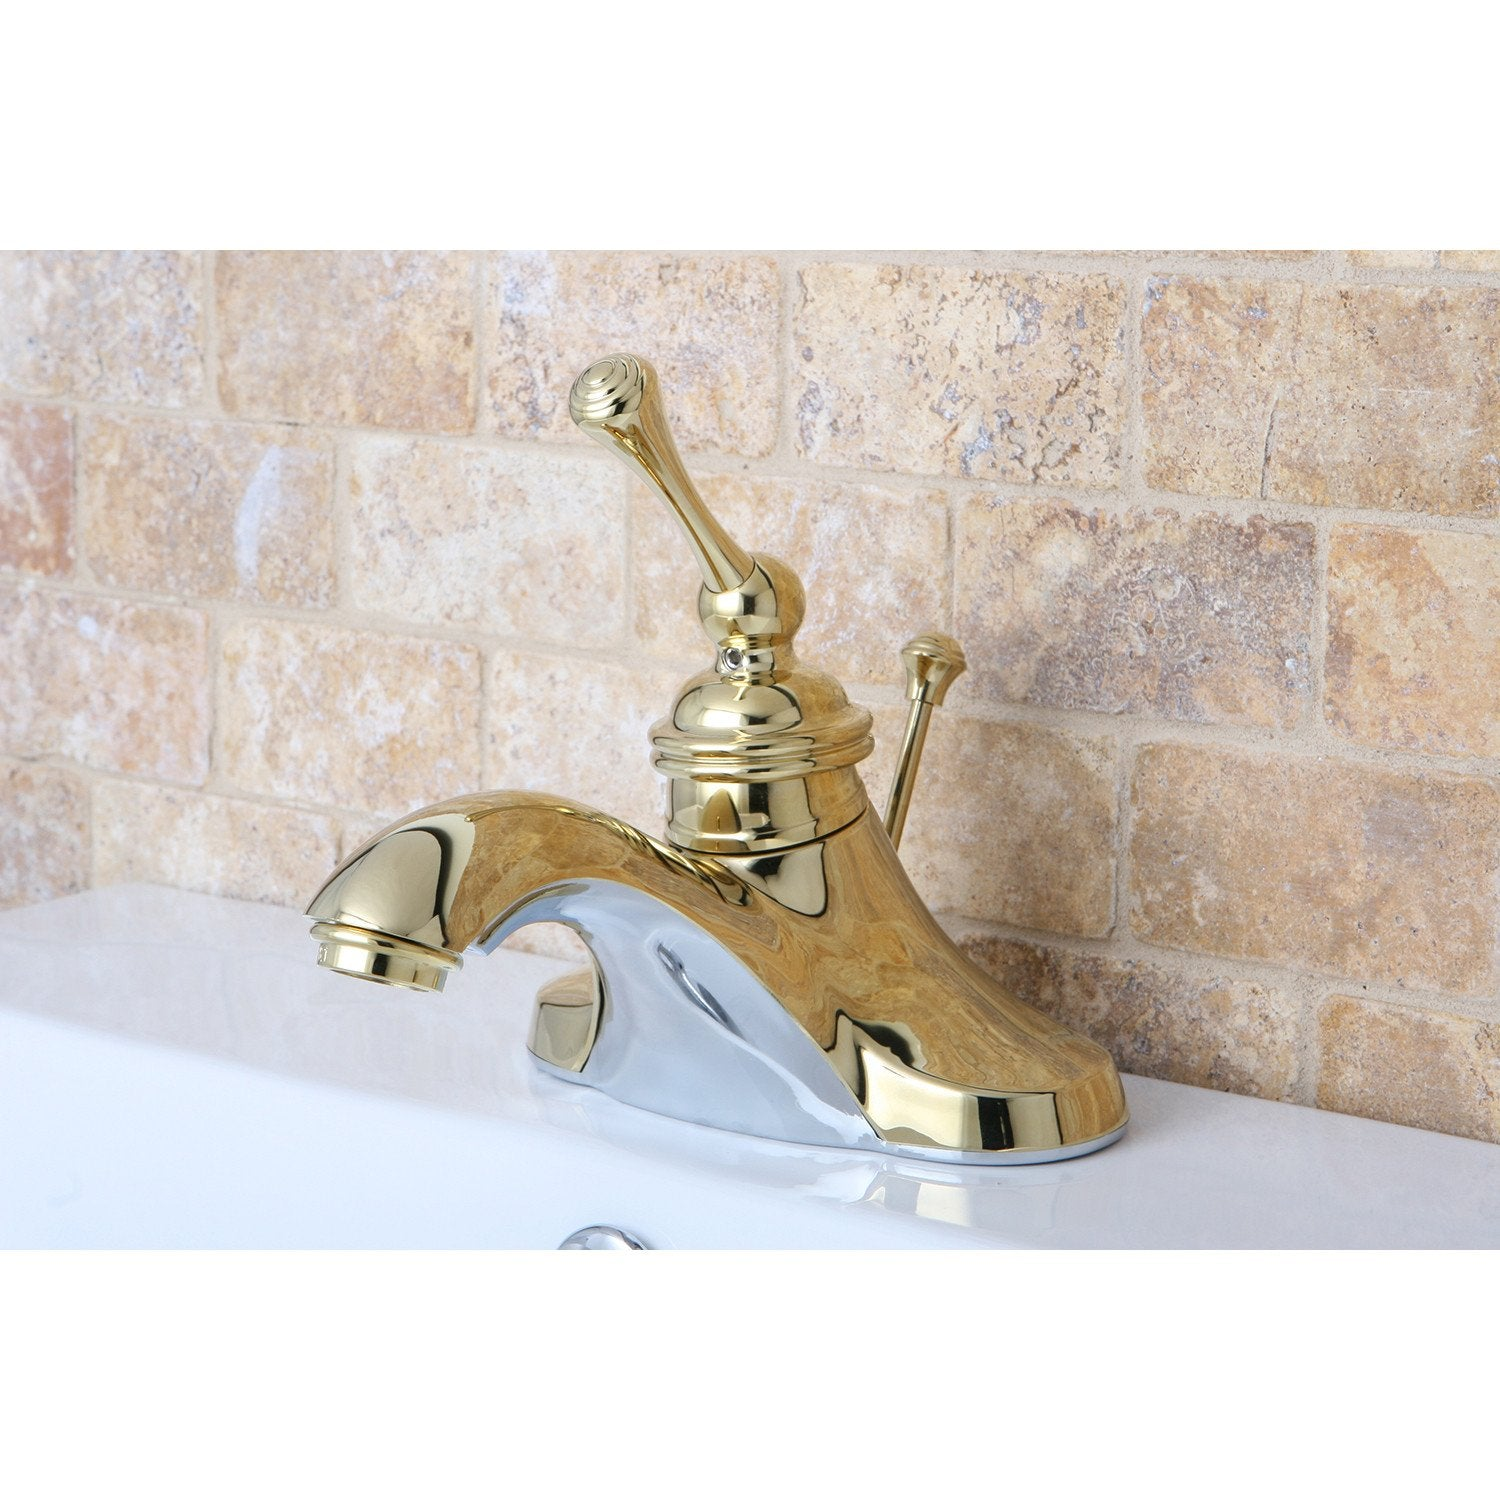 "Kingston Polished Brass Single Handle 4"" Centerset Bathroom Faucet KB3542BL"